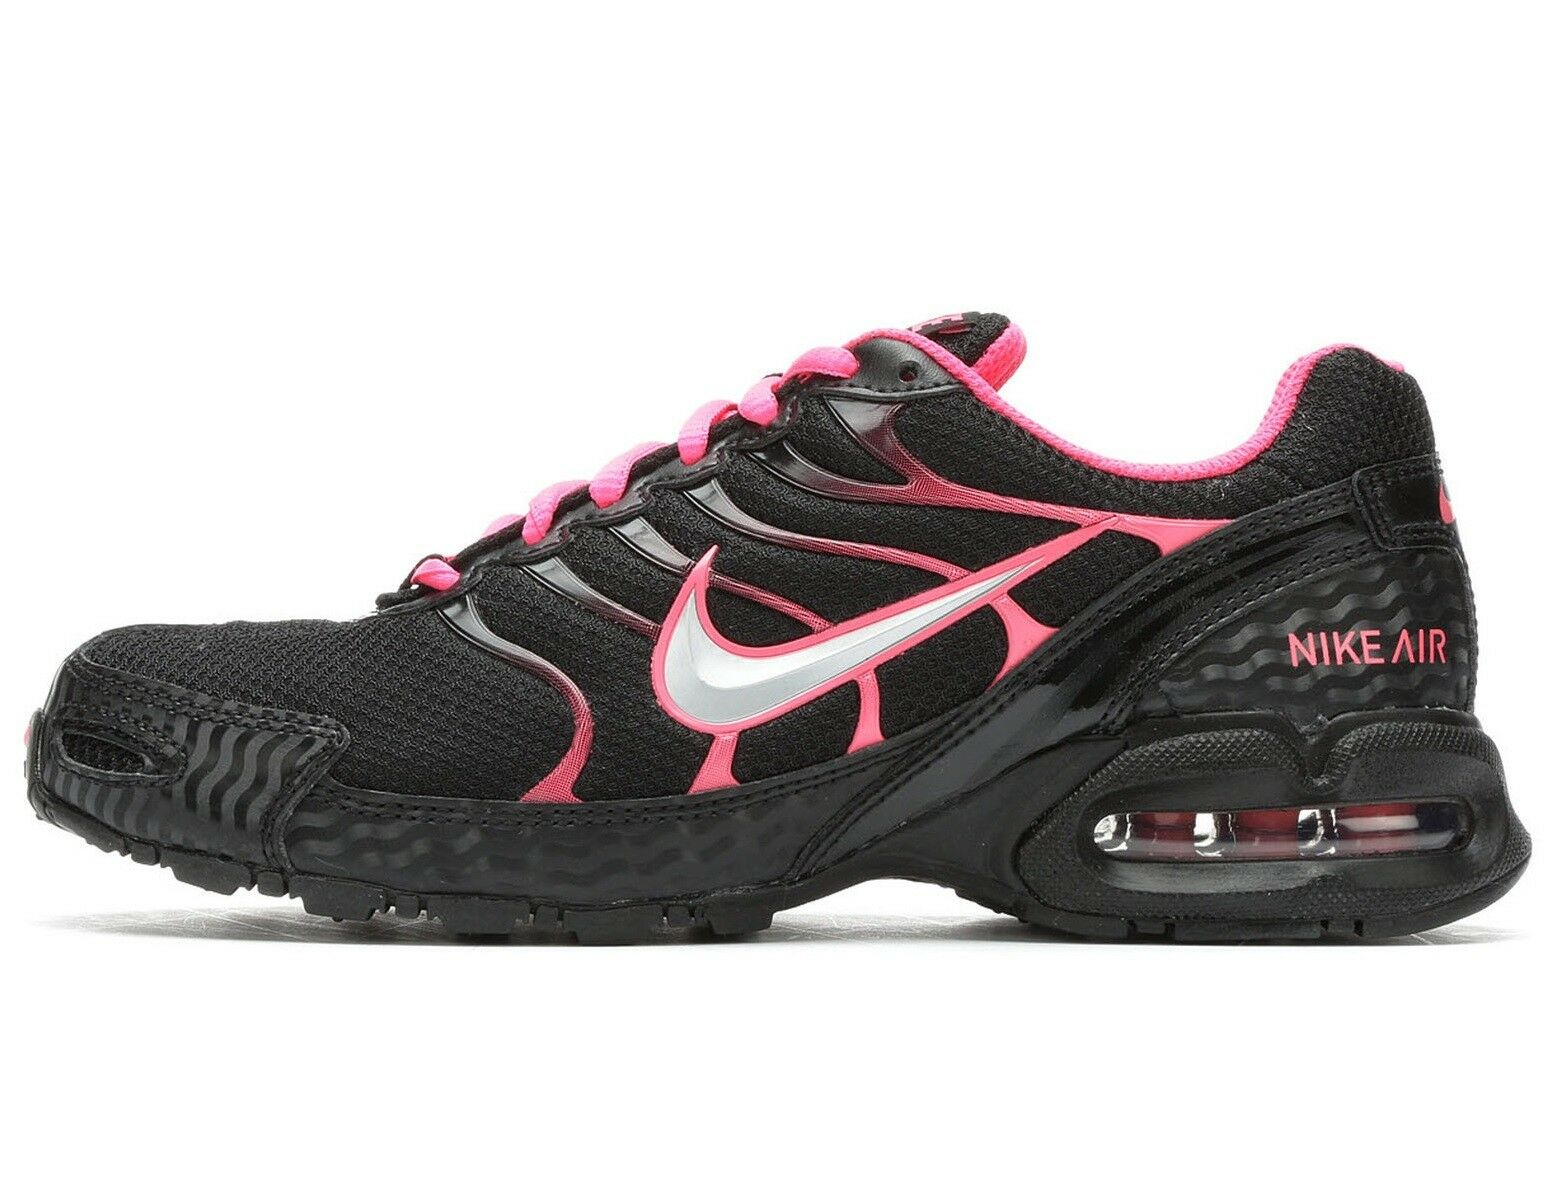 Nike Air Max Torch 4 Womens 343851-006 Black Pink Flash Running Shoes Size 5.5